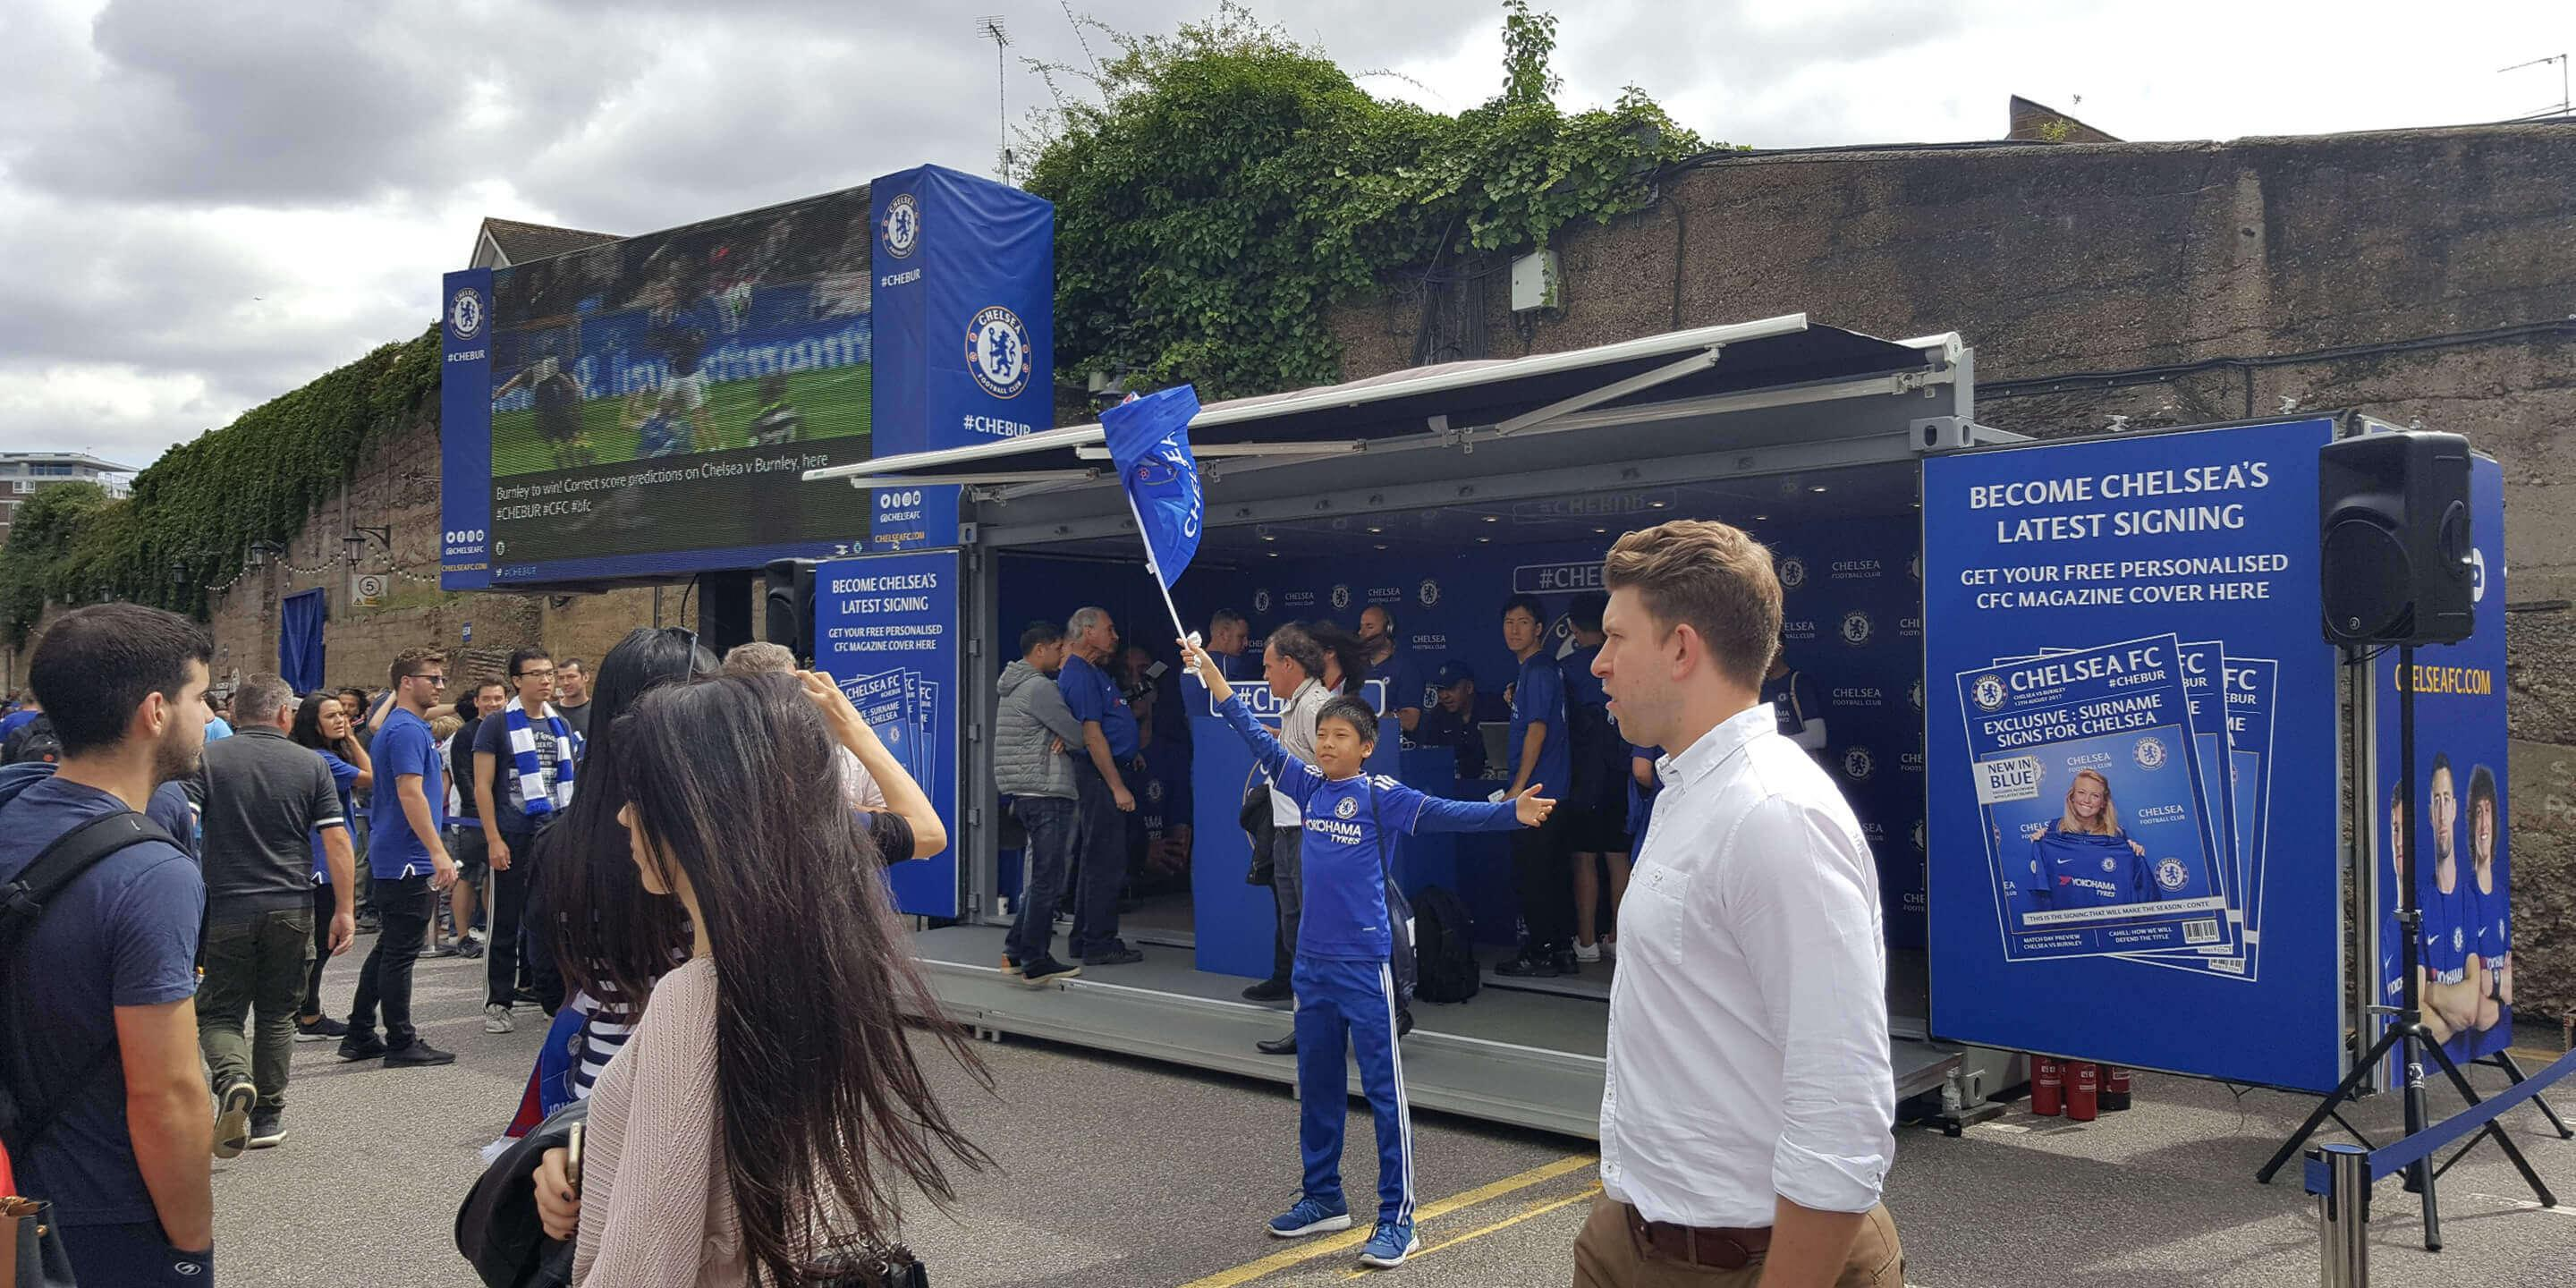 Event Shipping Containers: Studio Event Container for Chelsea FC Activation